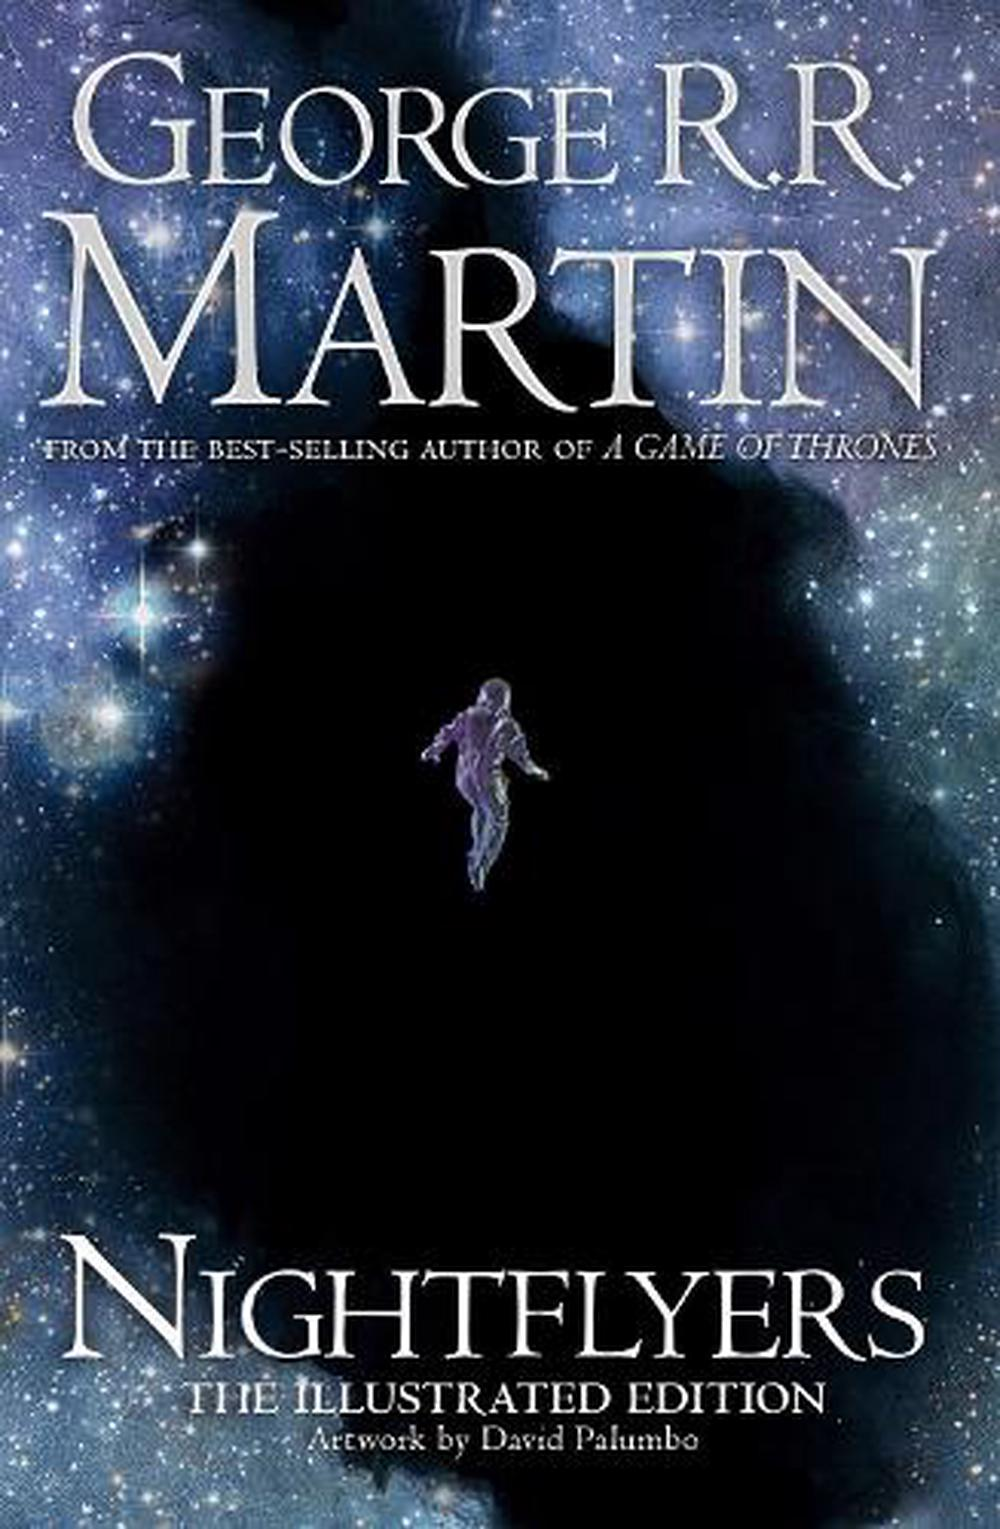 Nightflyers By George Rr Martin Hardcover 9780008296124 Buy Knight Of The Seven 1 Best Selling Author A Song Ice And Fire Brought To Electrifying Life With Artwork David Palumbo